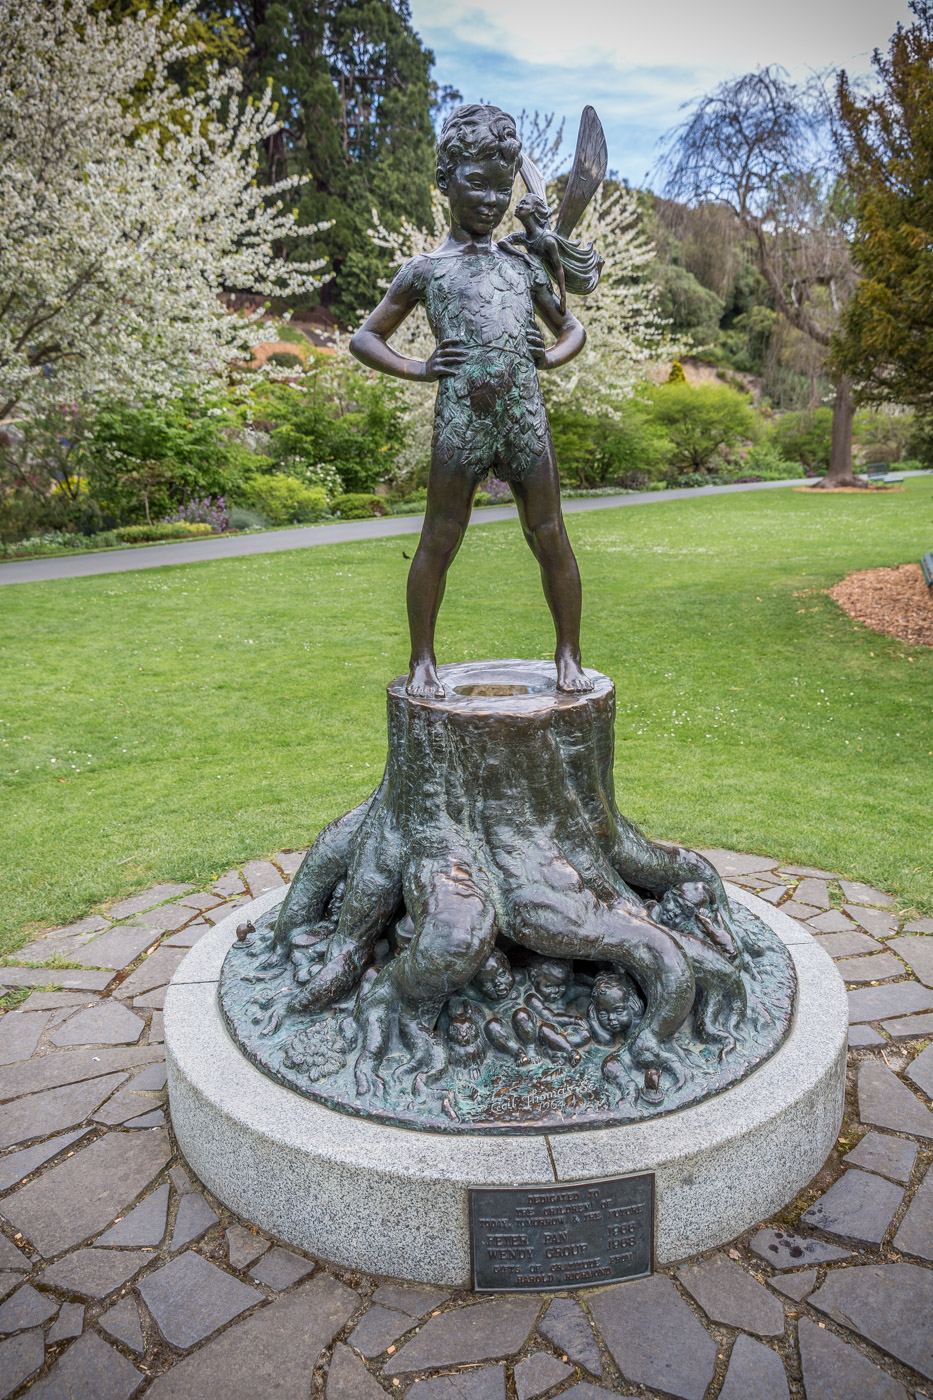 Peter Pan Statue in the Dunedin Botanical Gardens, South Island, New Zealand